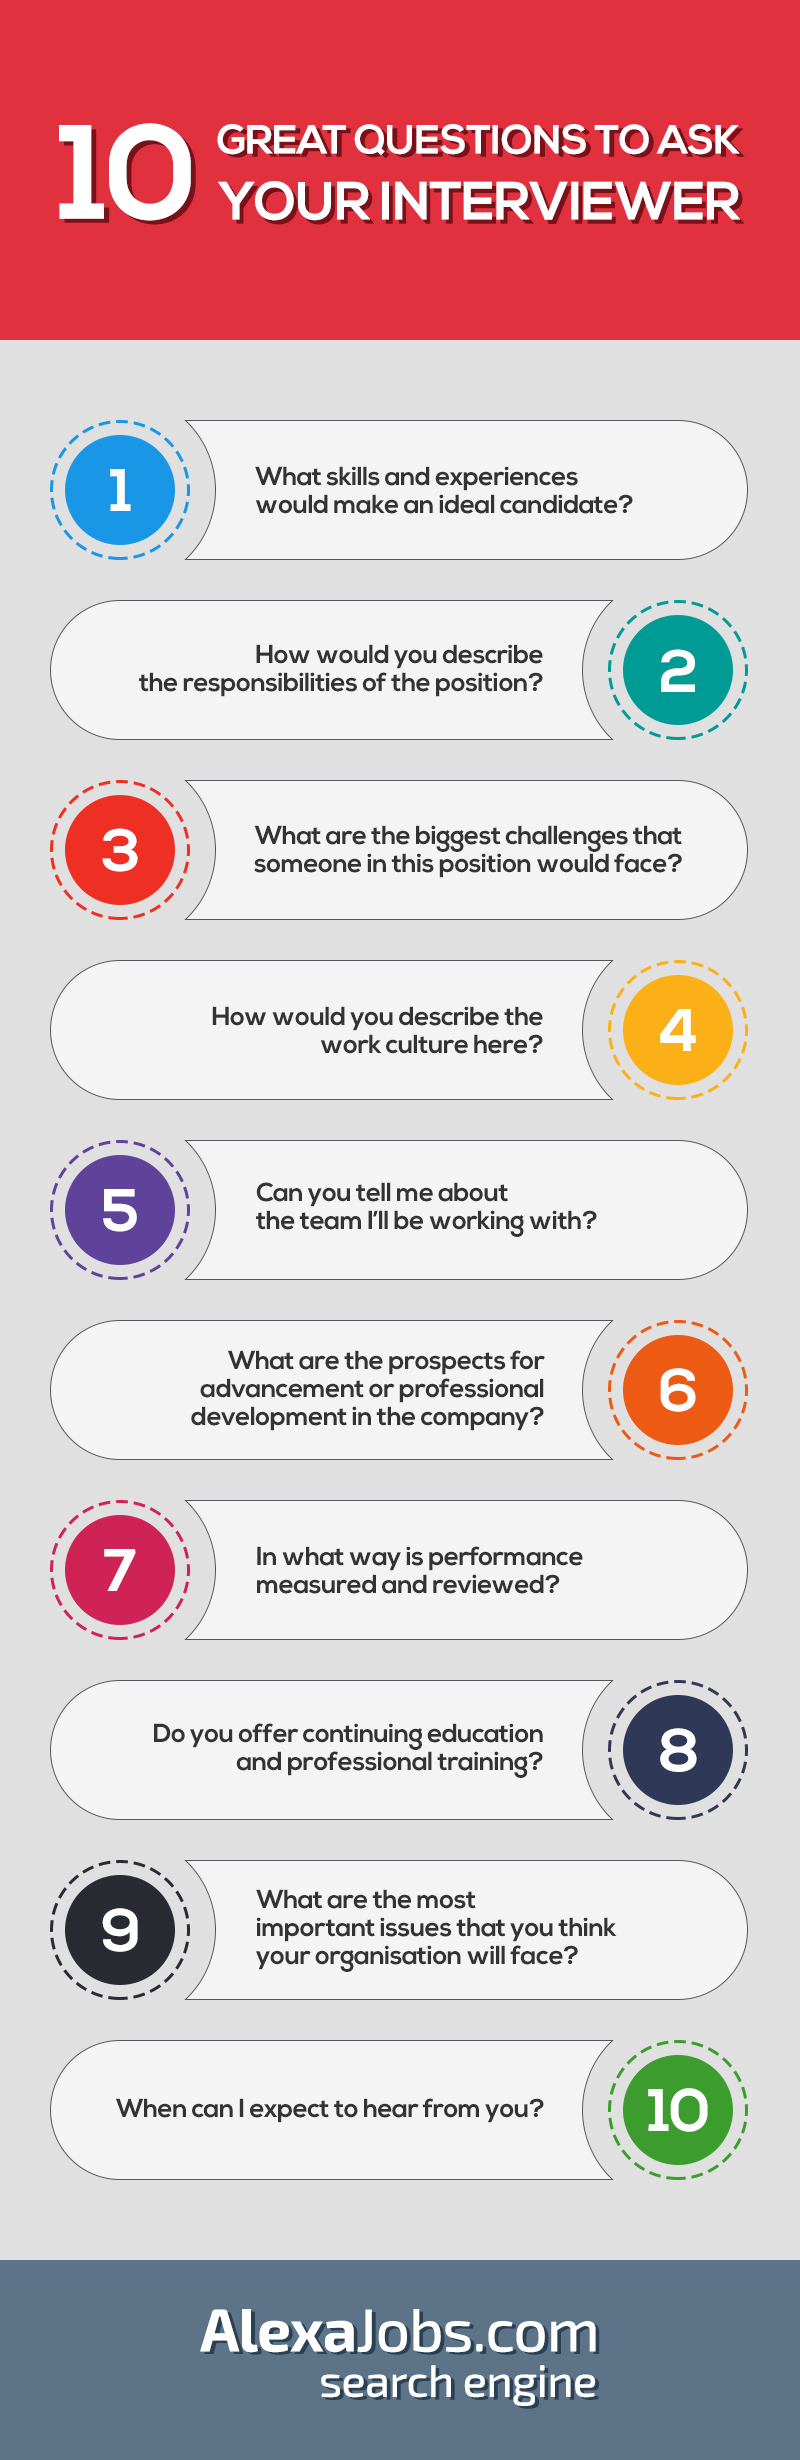 10 great questions to ask your interviewer   infographic